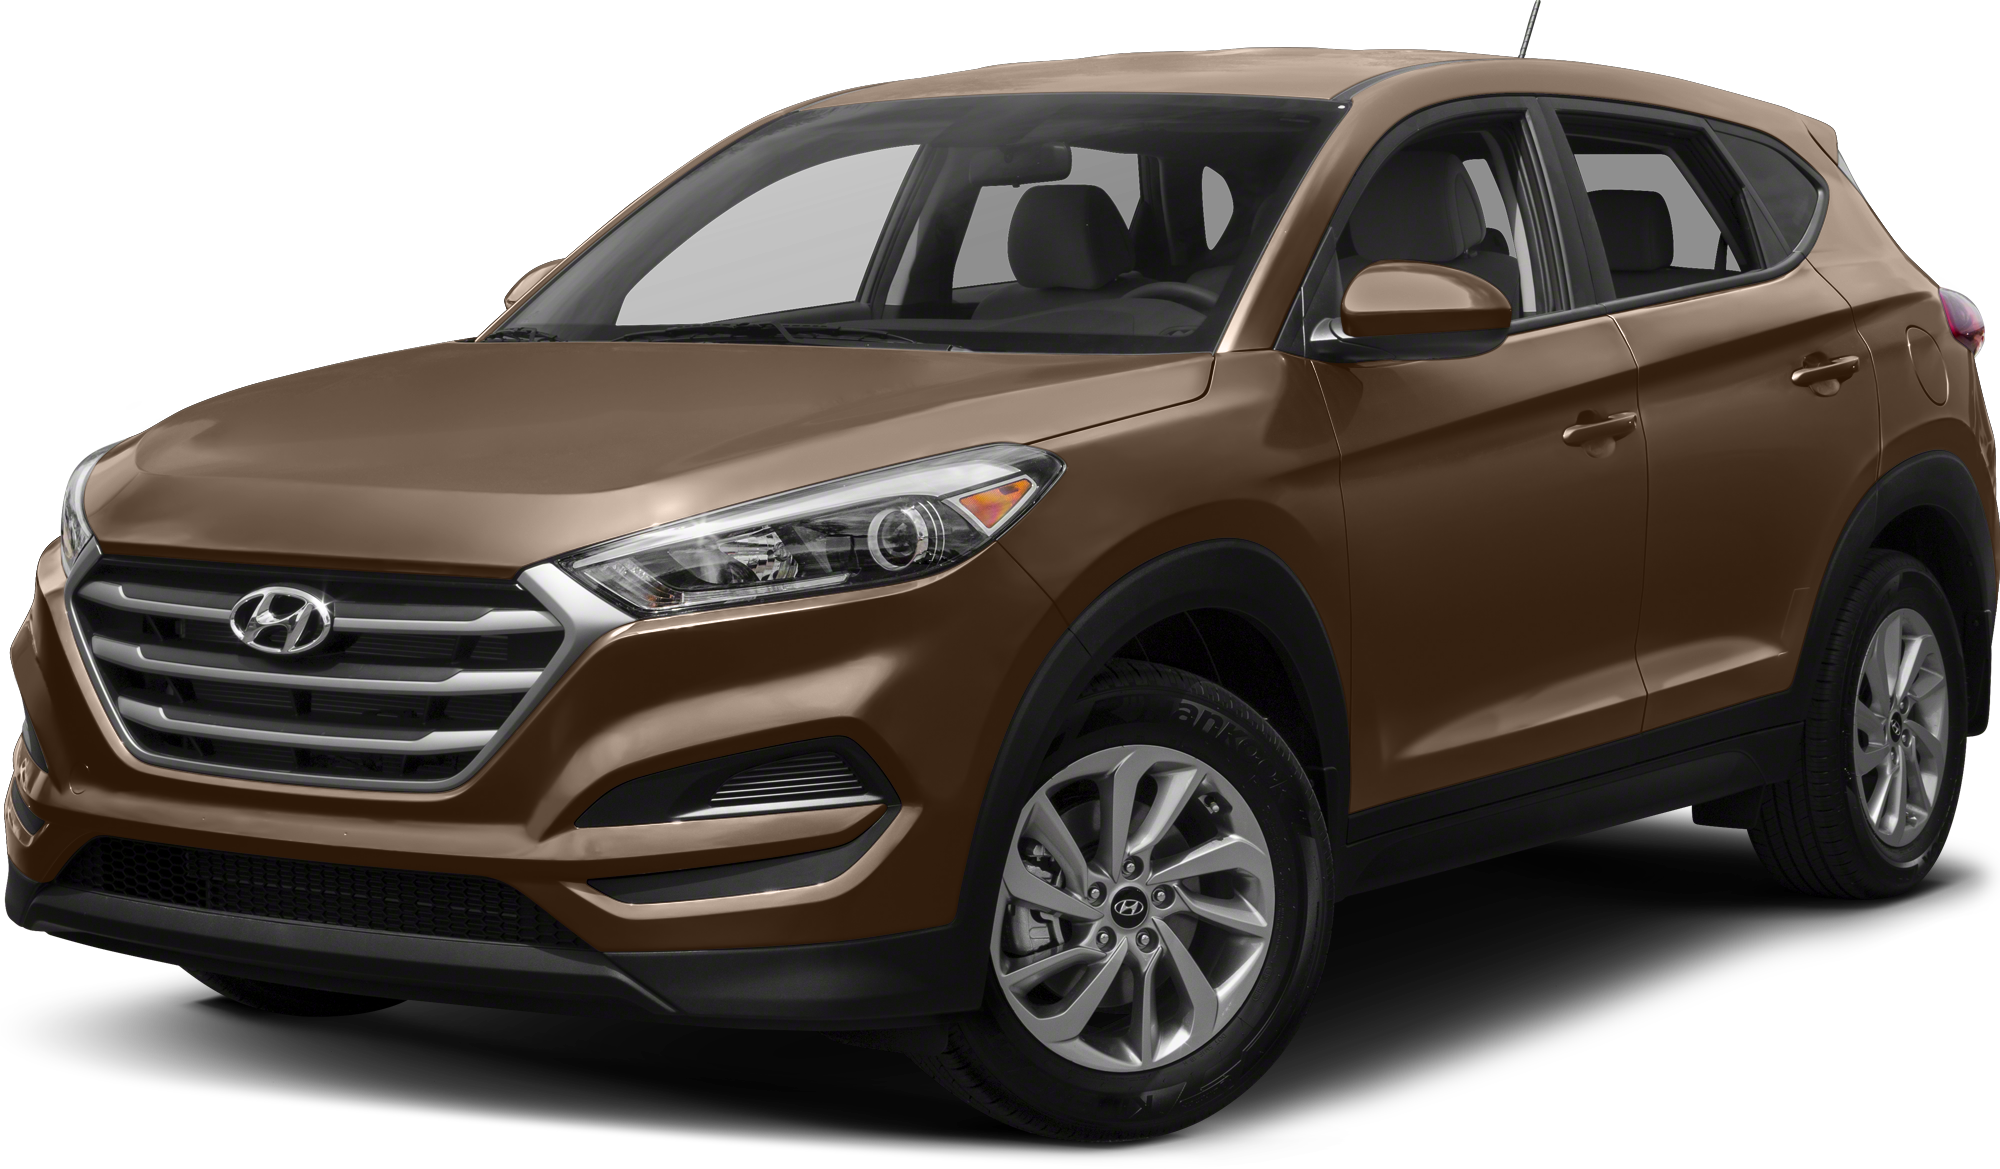 hyundai tucson lease deals imperial hyundai. Black Bedroom Furniture Sets. Home Design Ideas